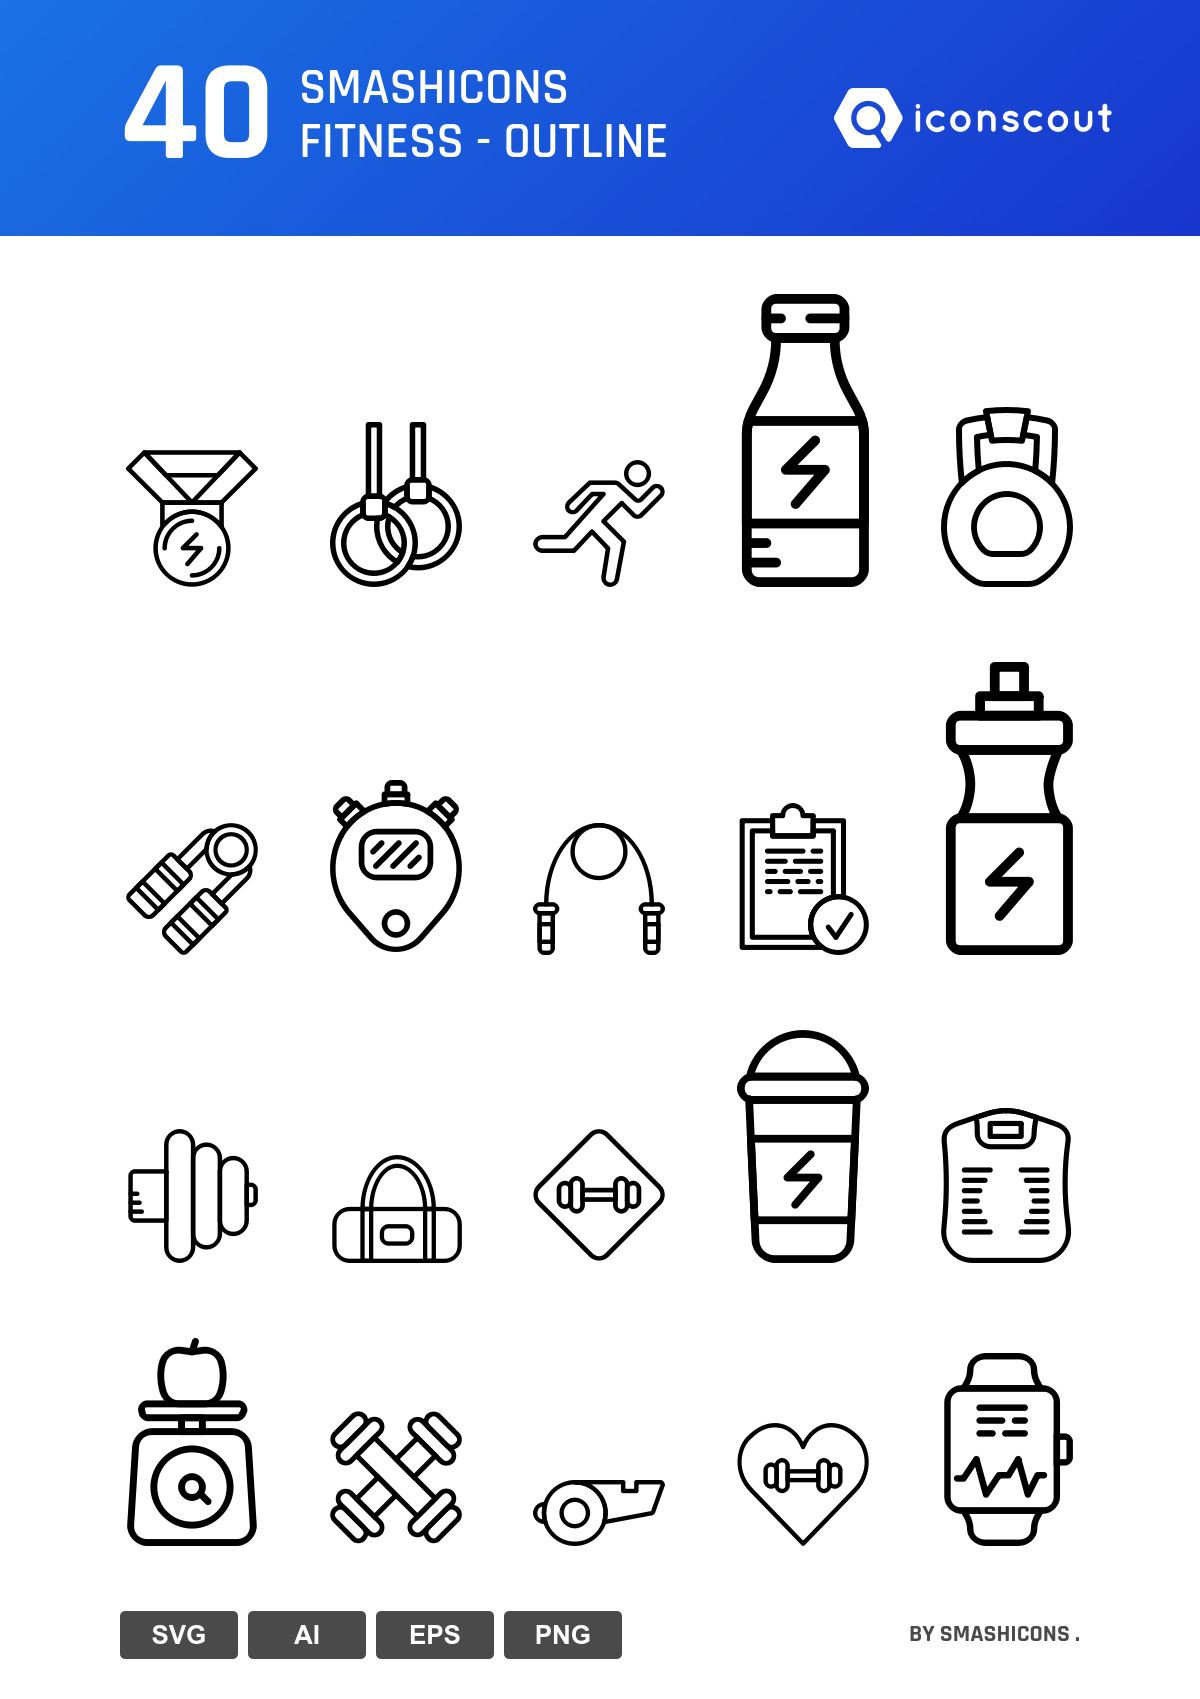 Smashicons Fitness - Outline icons by Smashicons .